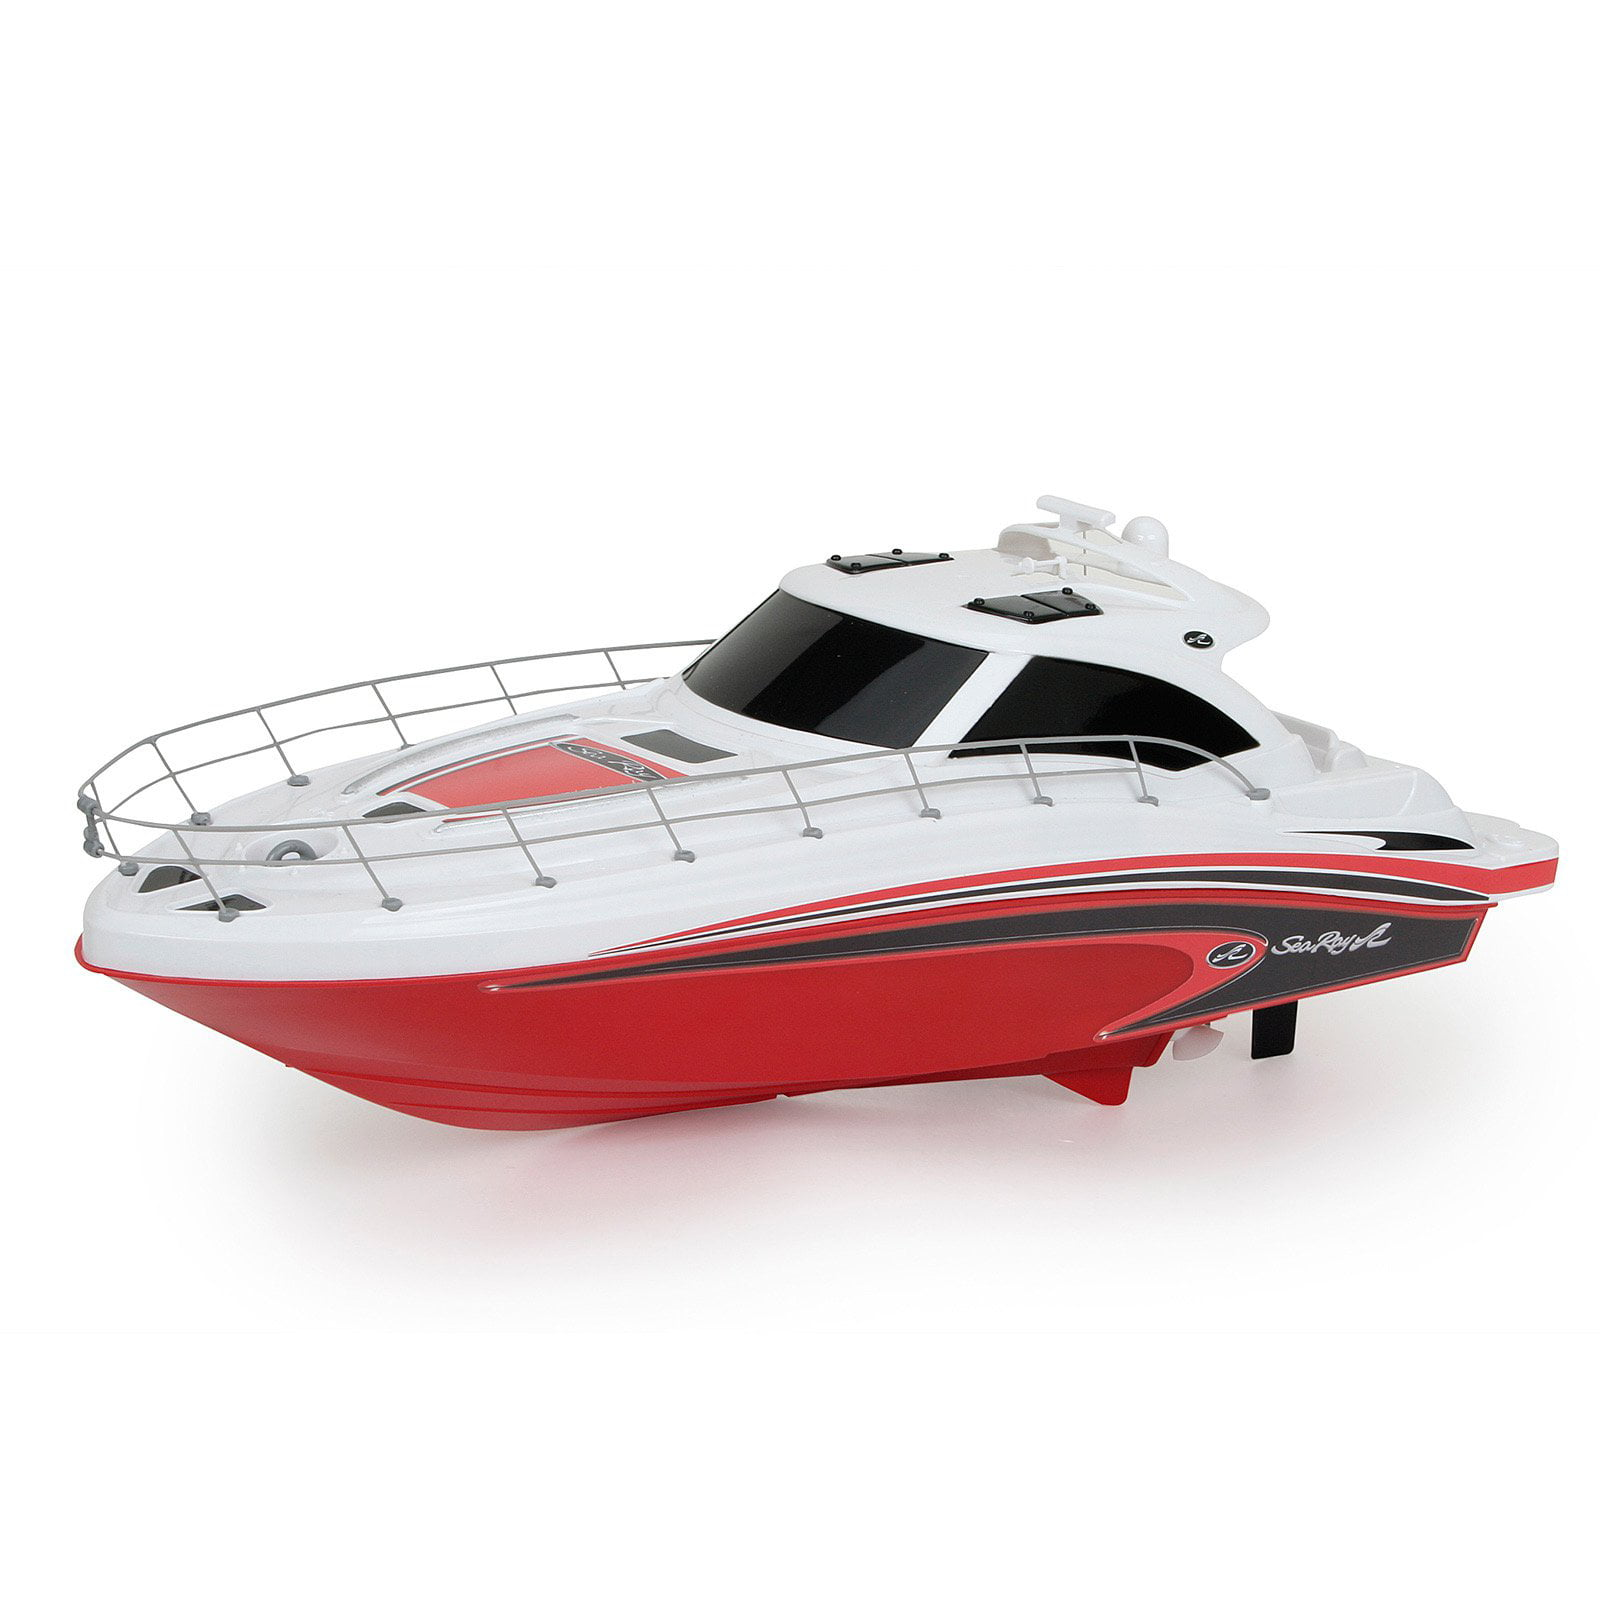 New Bright Sea Ray Boat Radio Controlled Toy Red by Overstock